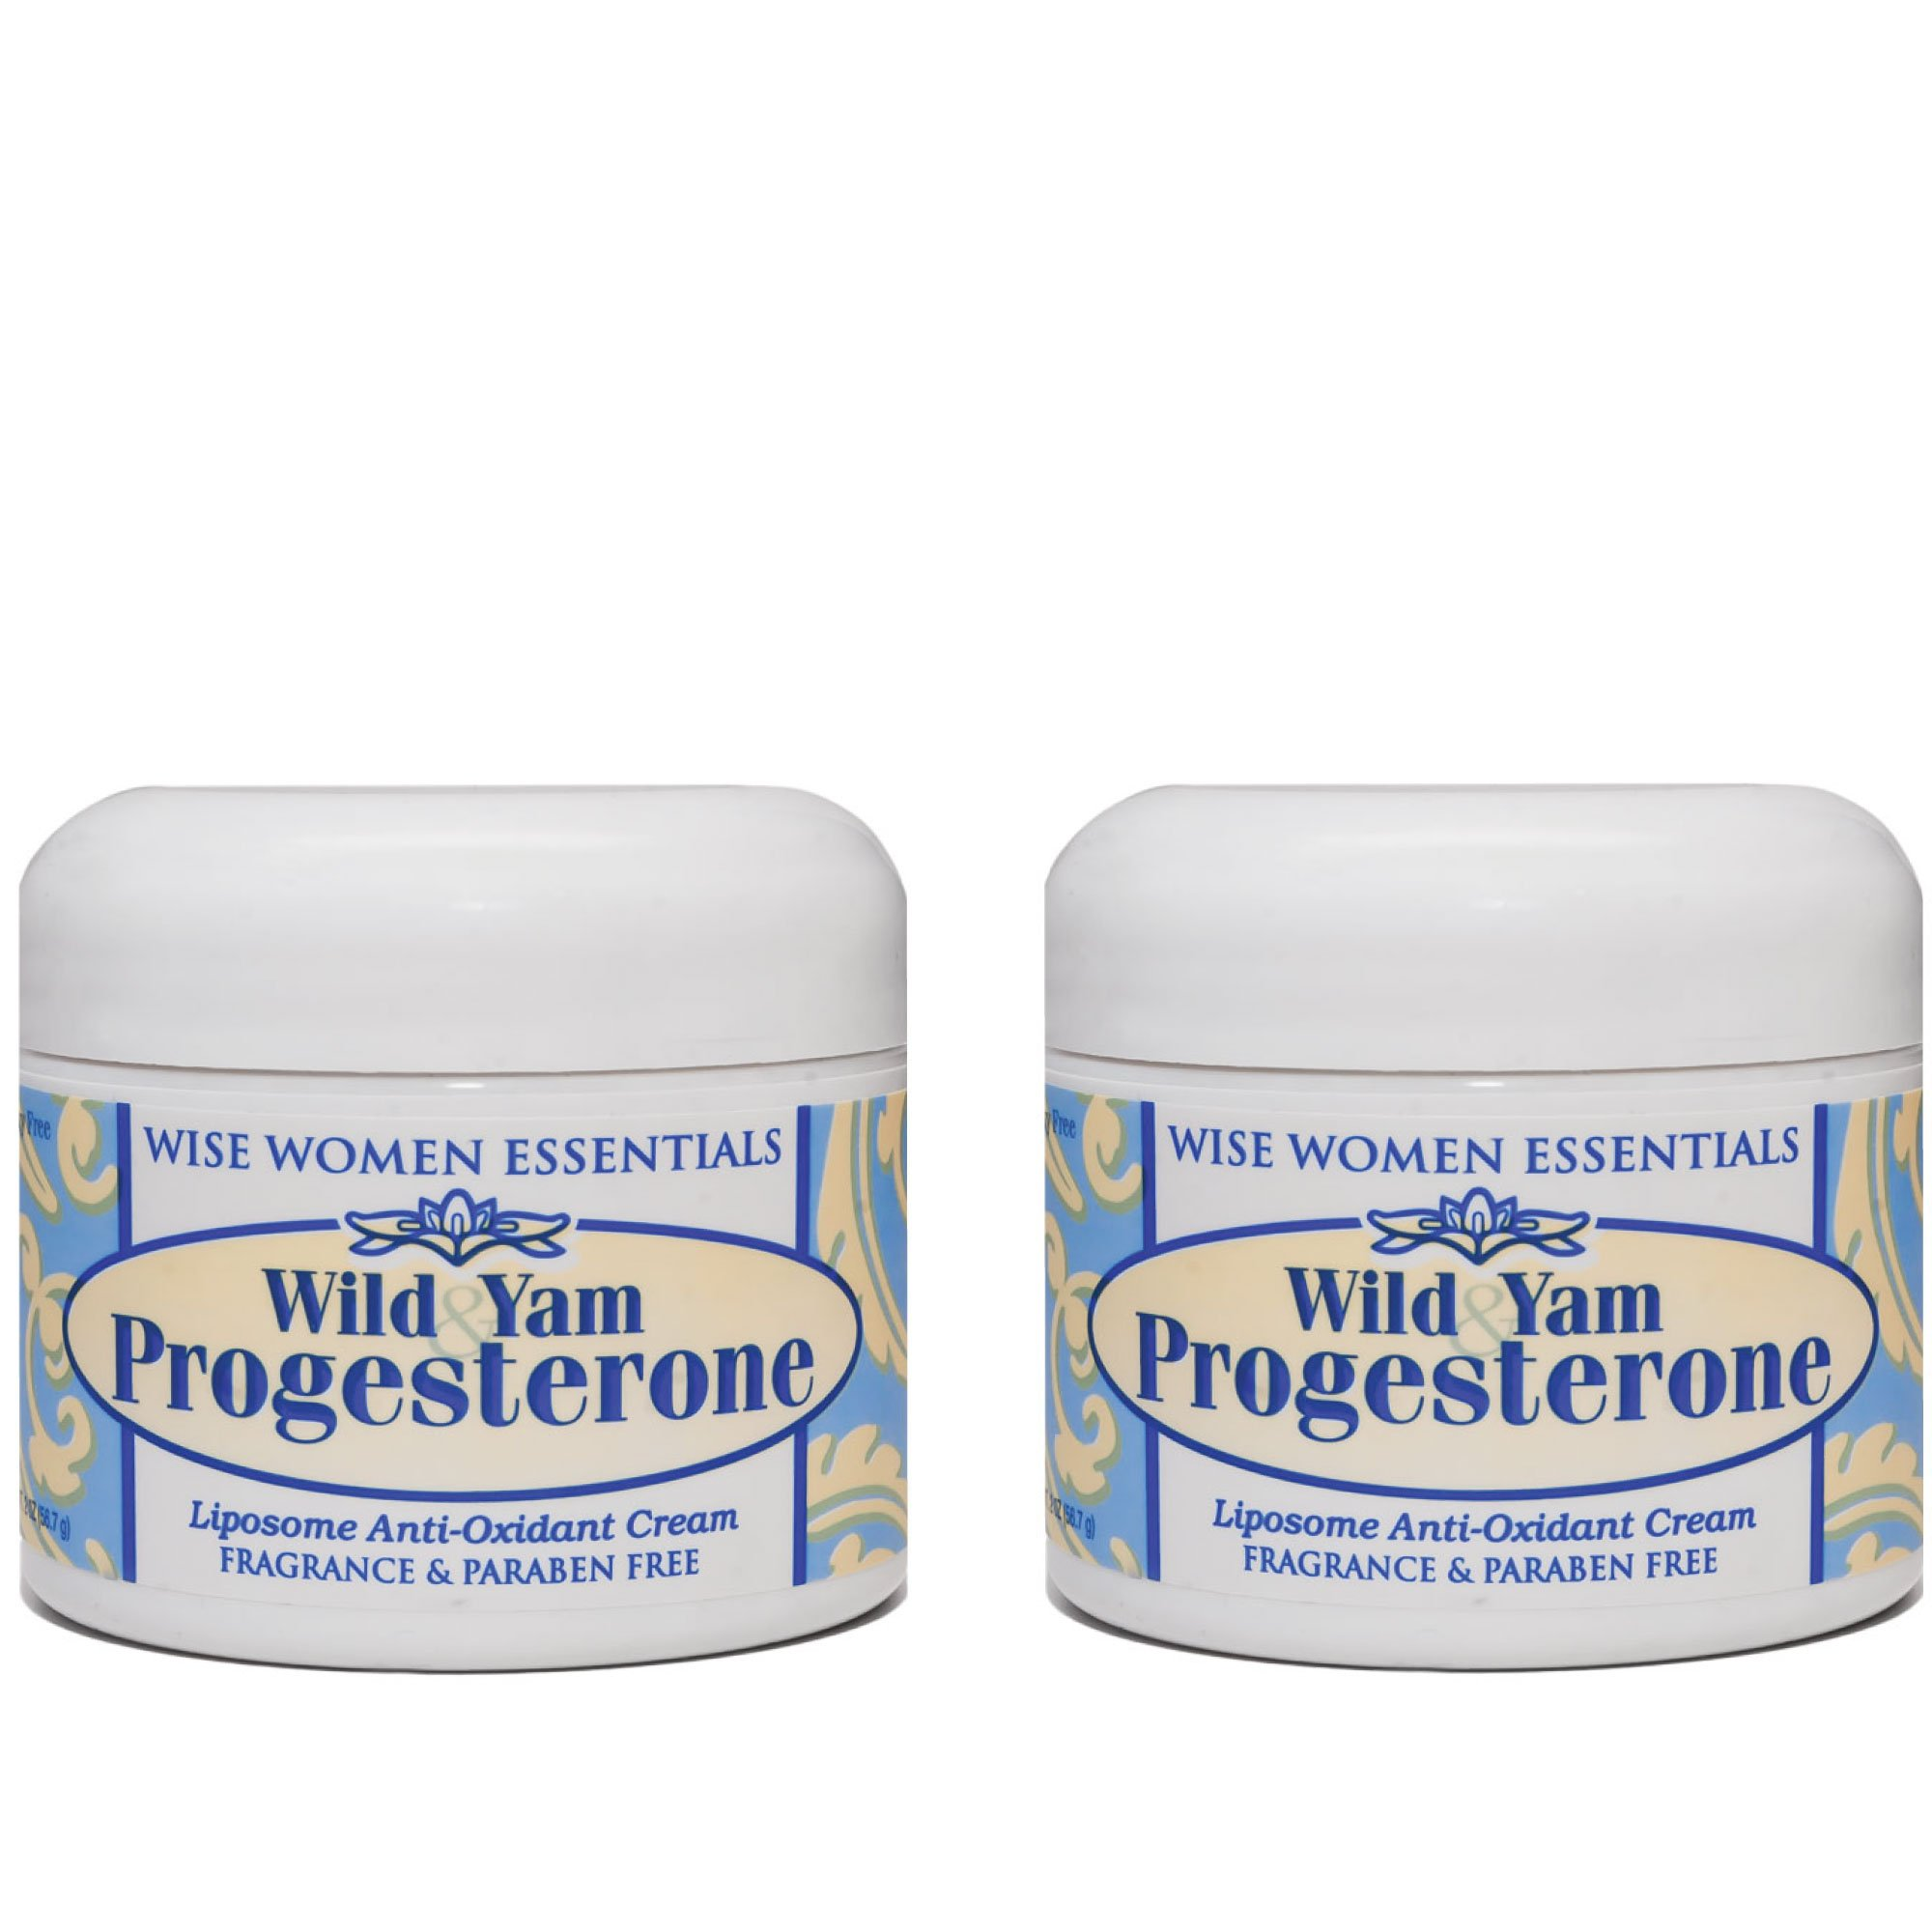 Wild Yam & Progesterone Cream - For Menopause and Mid life Changes. 2 oz - Paraben Free - Fragrance Free - Wise Essentials 2 Jars pack